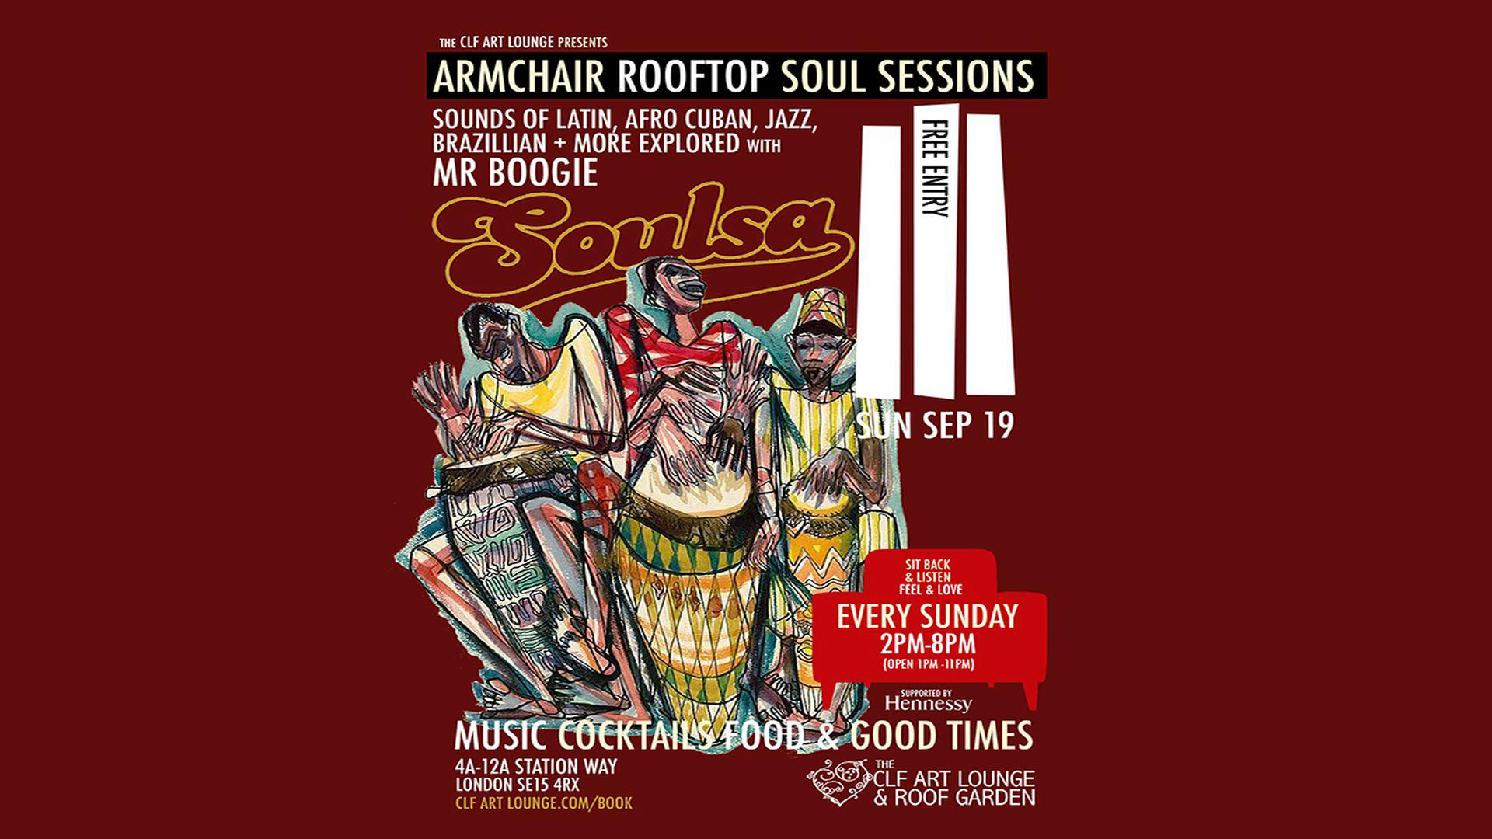 Armchair Rooftop Soul Sessions - Soulsa with Mr. Boogie - Free Entry